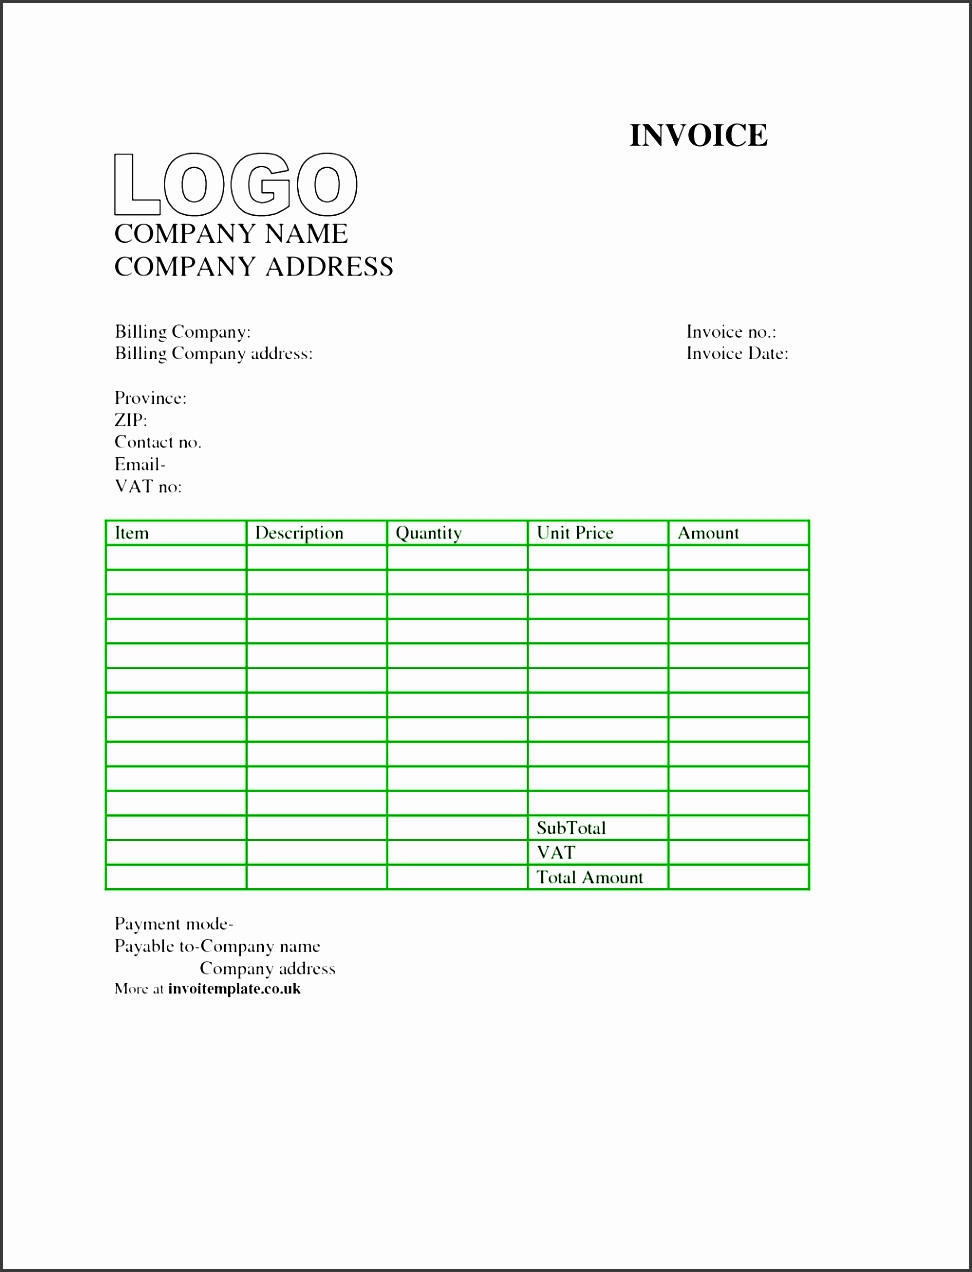 Receipt Template Google Docs Awesome 8 Blank Invoice Template In Excel Sampletemplatess